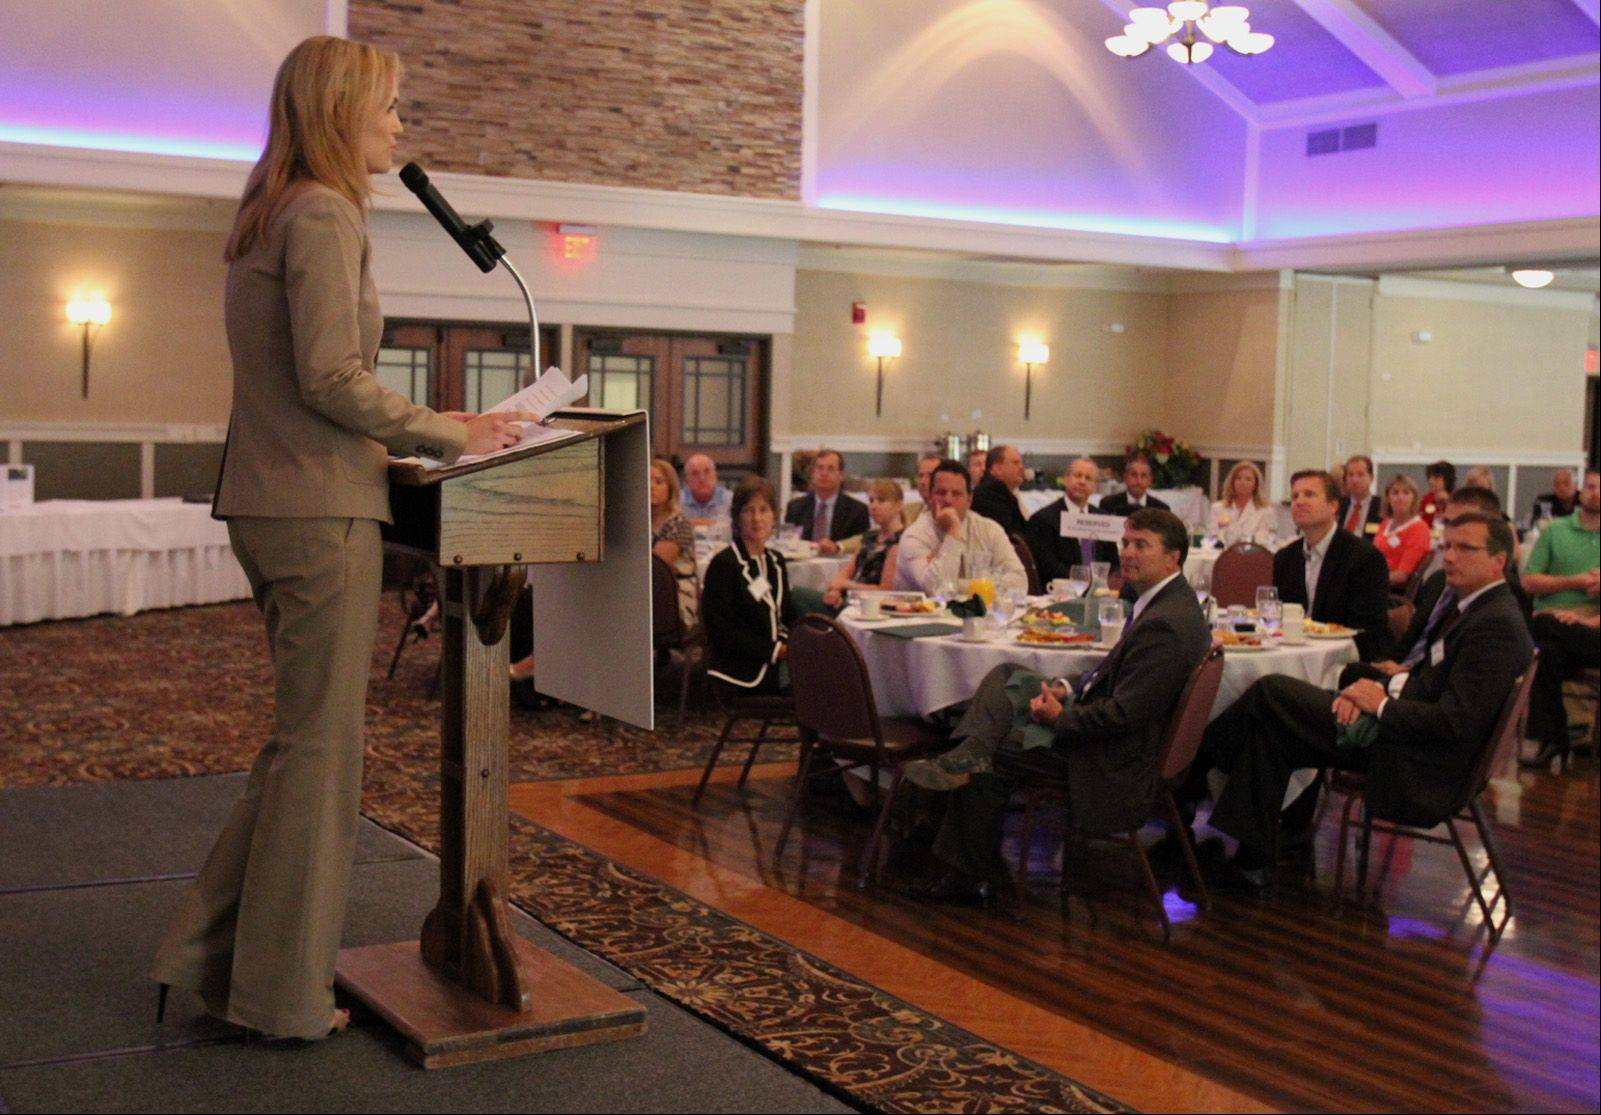 New Schaumburg Business Association President Kaili Harding speaks Tuesday during the association's monthly Good Morning Schaumburg breakfast. Harding took over as the association's president last month.